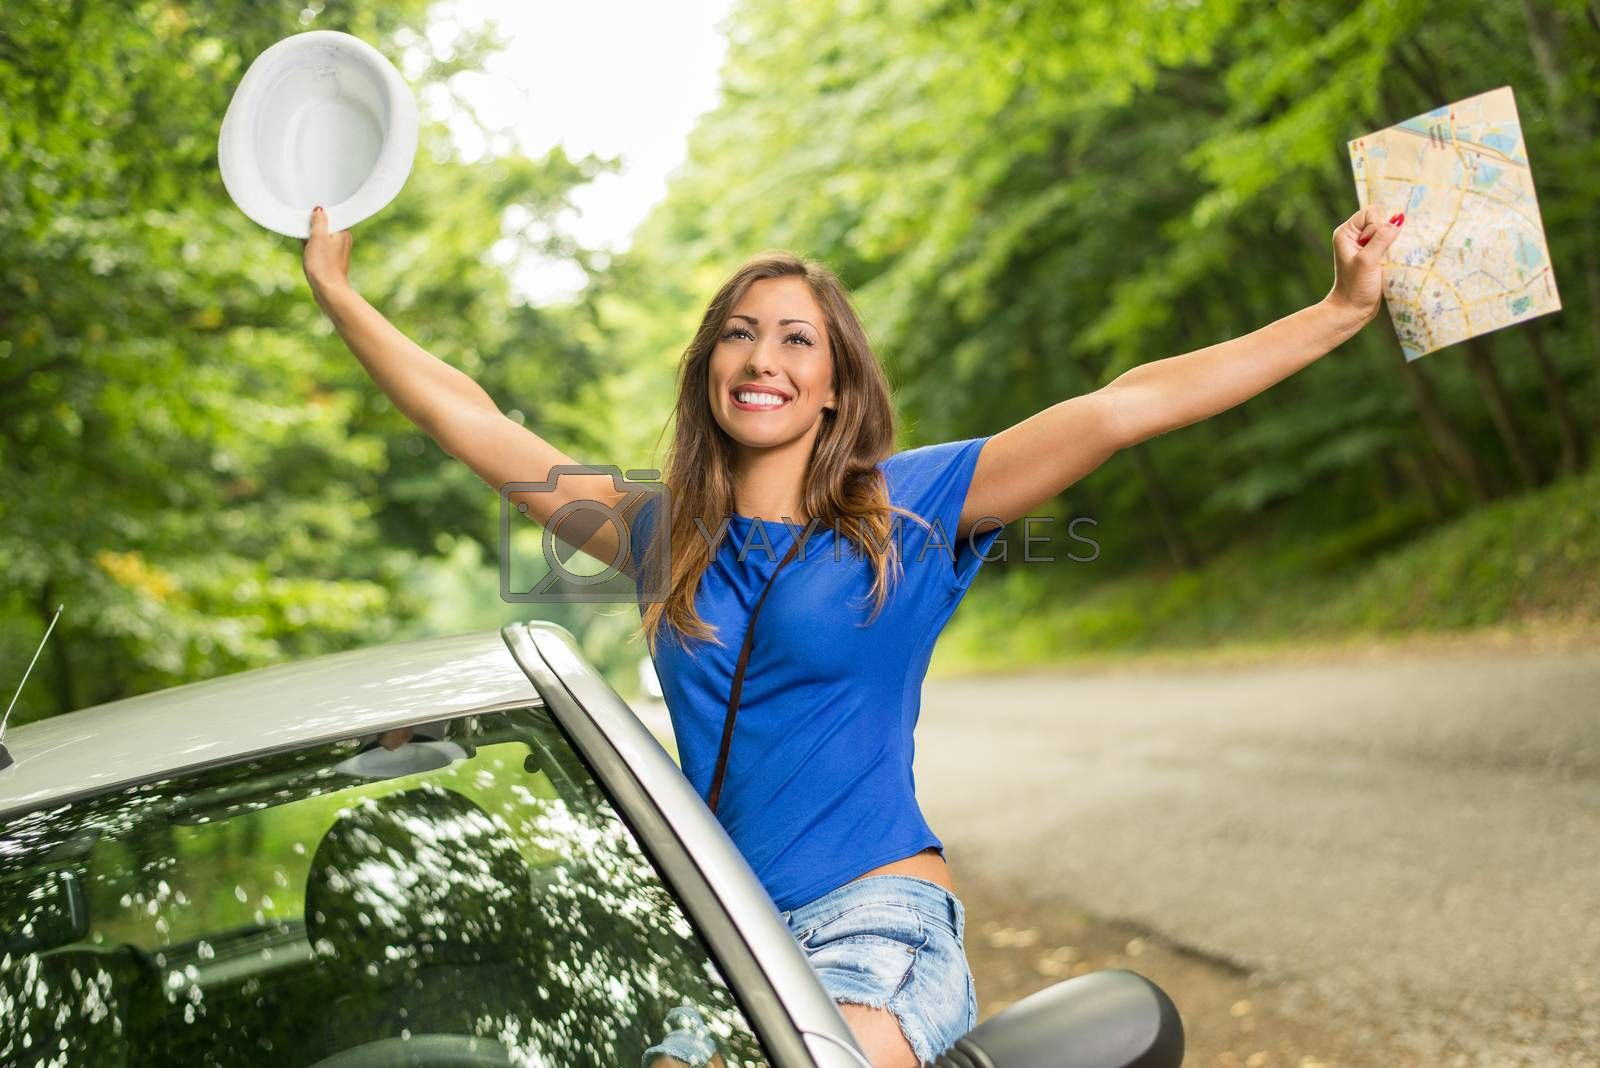 Cheerful woman on summer travel vacation leaning out of a car window. She is holding map with arms raised.